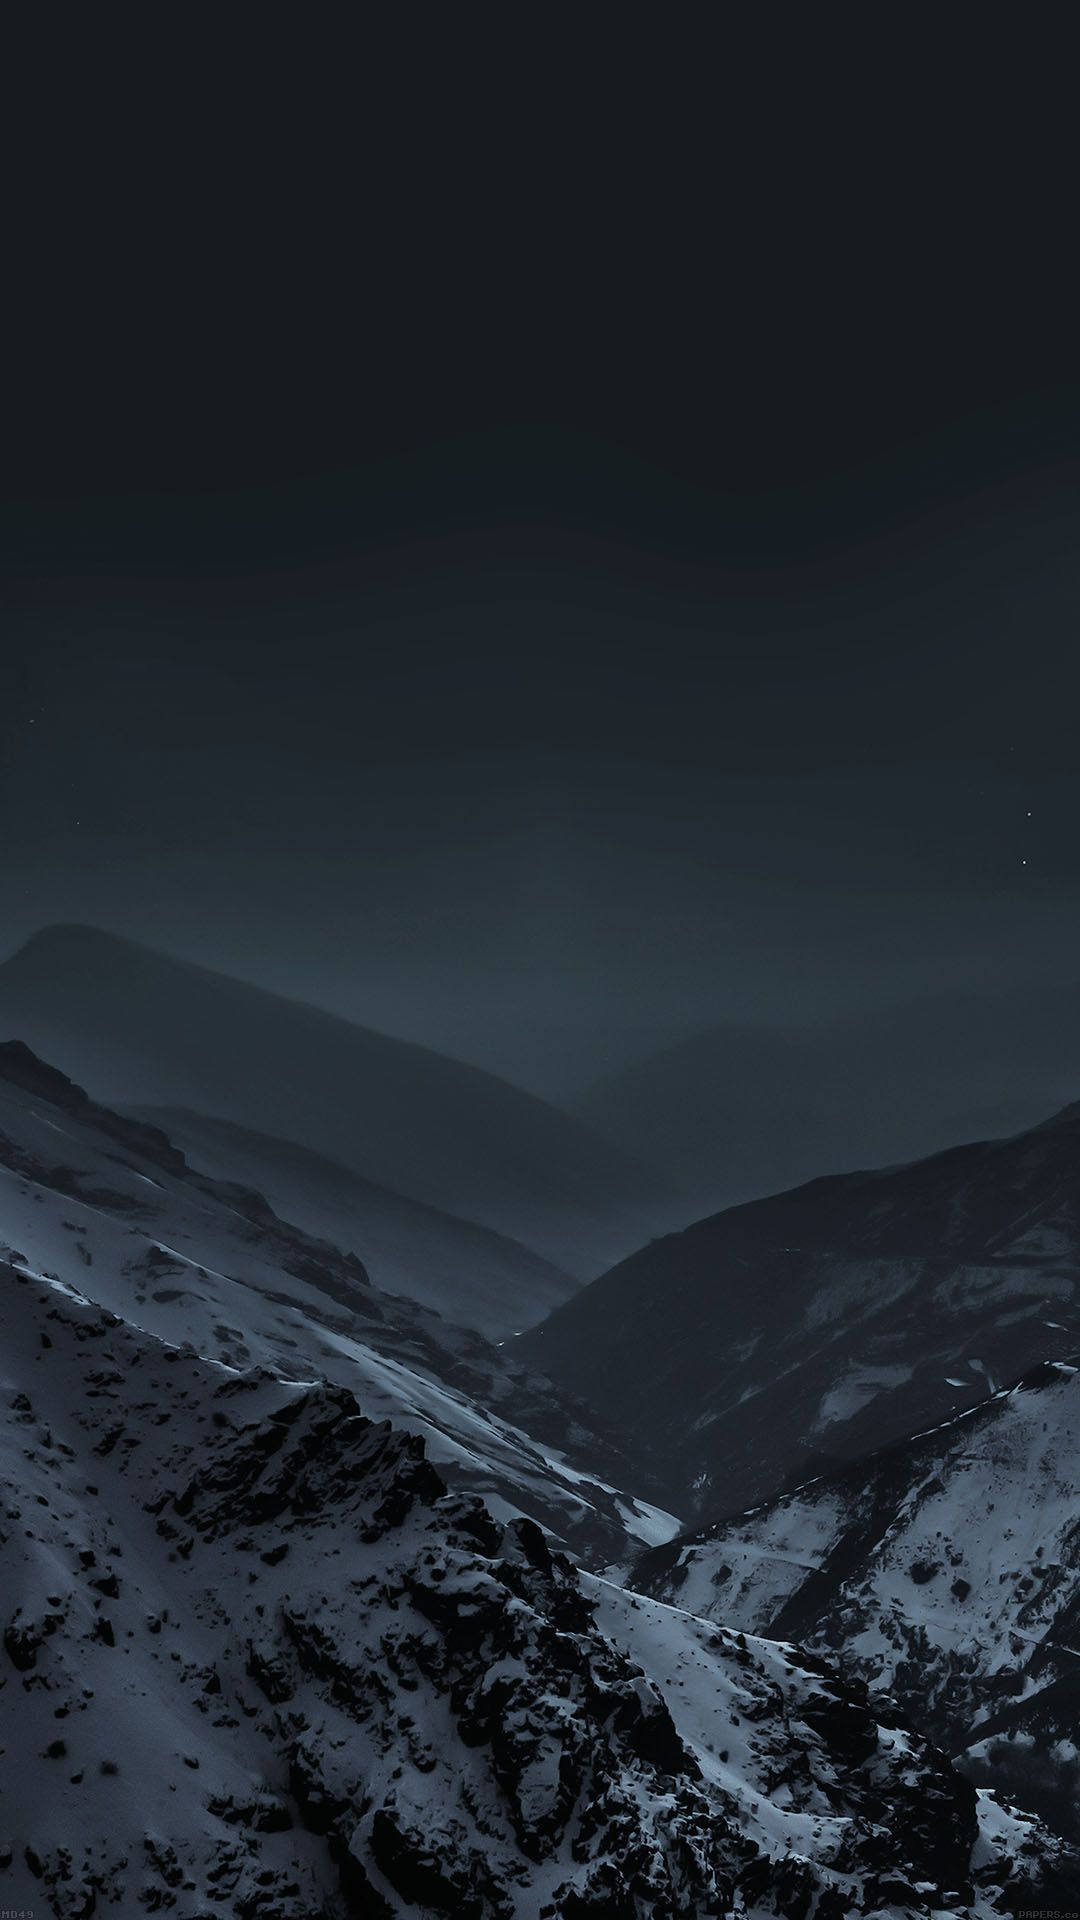 Iphone wallpaper tumblr snow - Mountains At Night Fog Snow Android Wallpaper